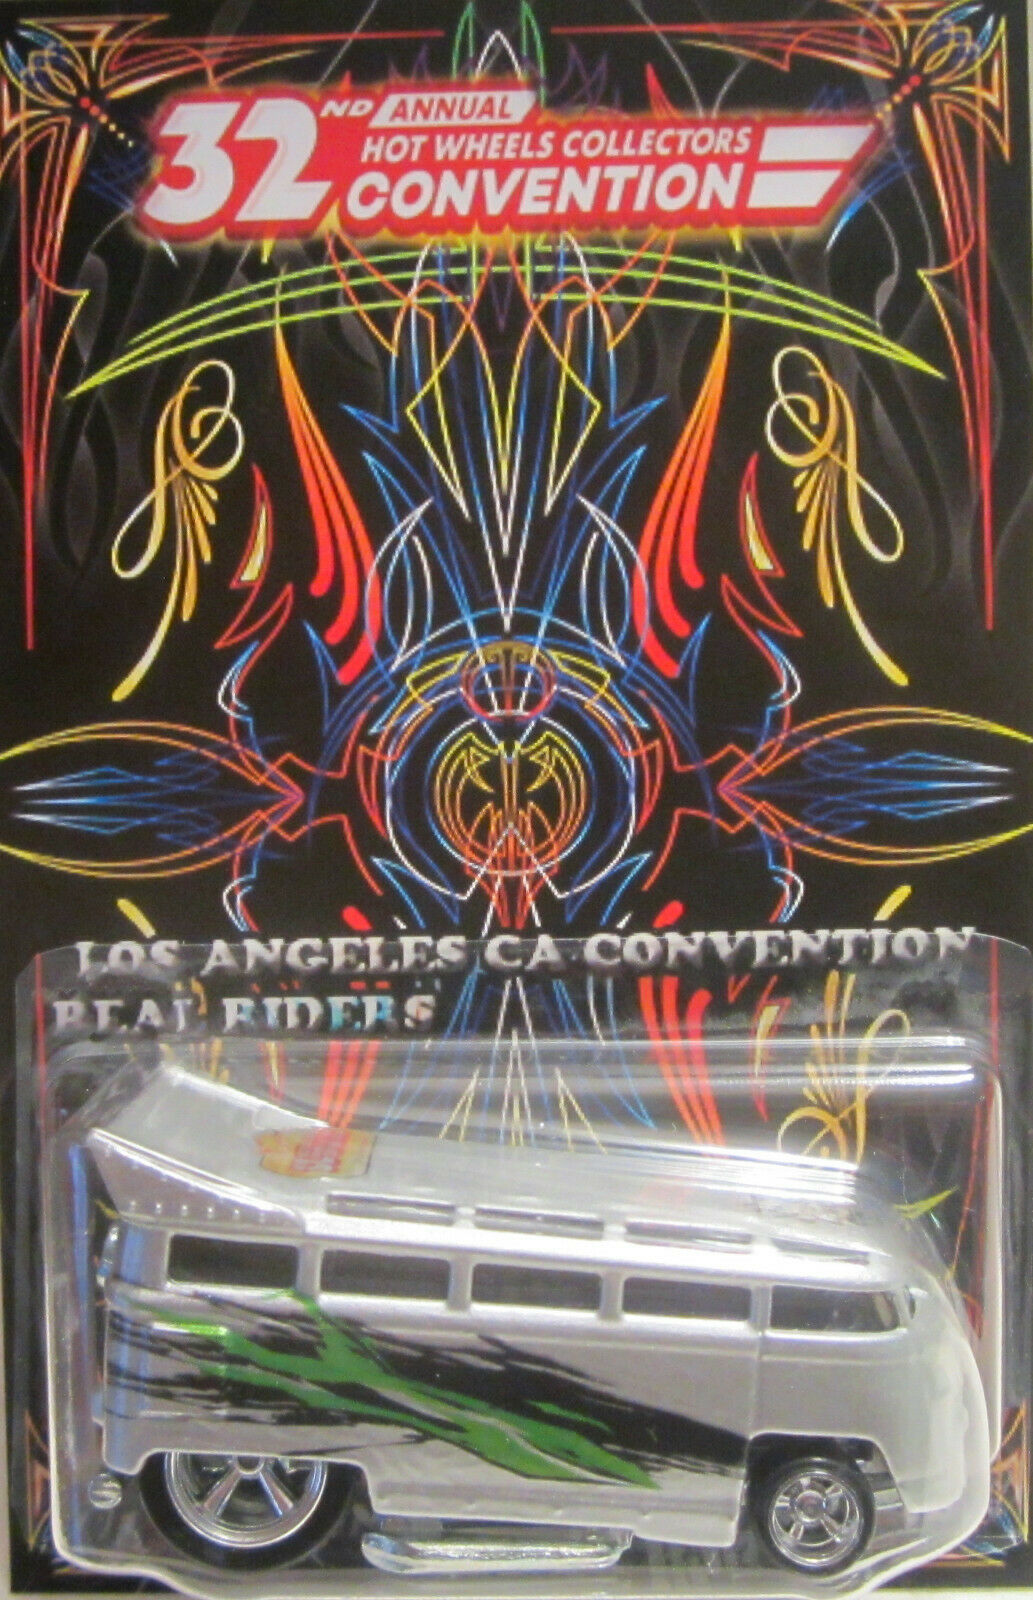 Personnalisé Volkswagen Drag Bus 32nd Hot Wheels Convention Real Riders